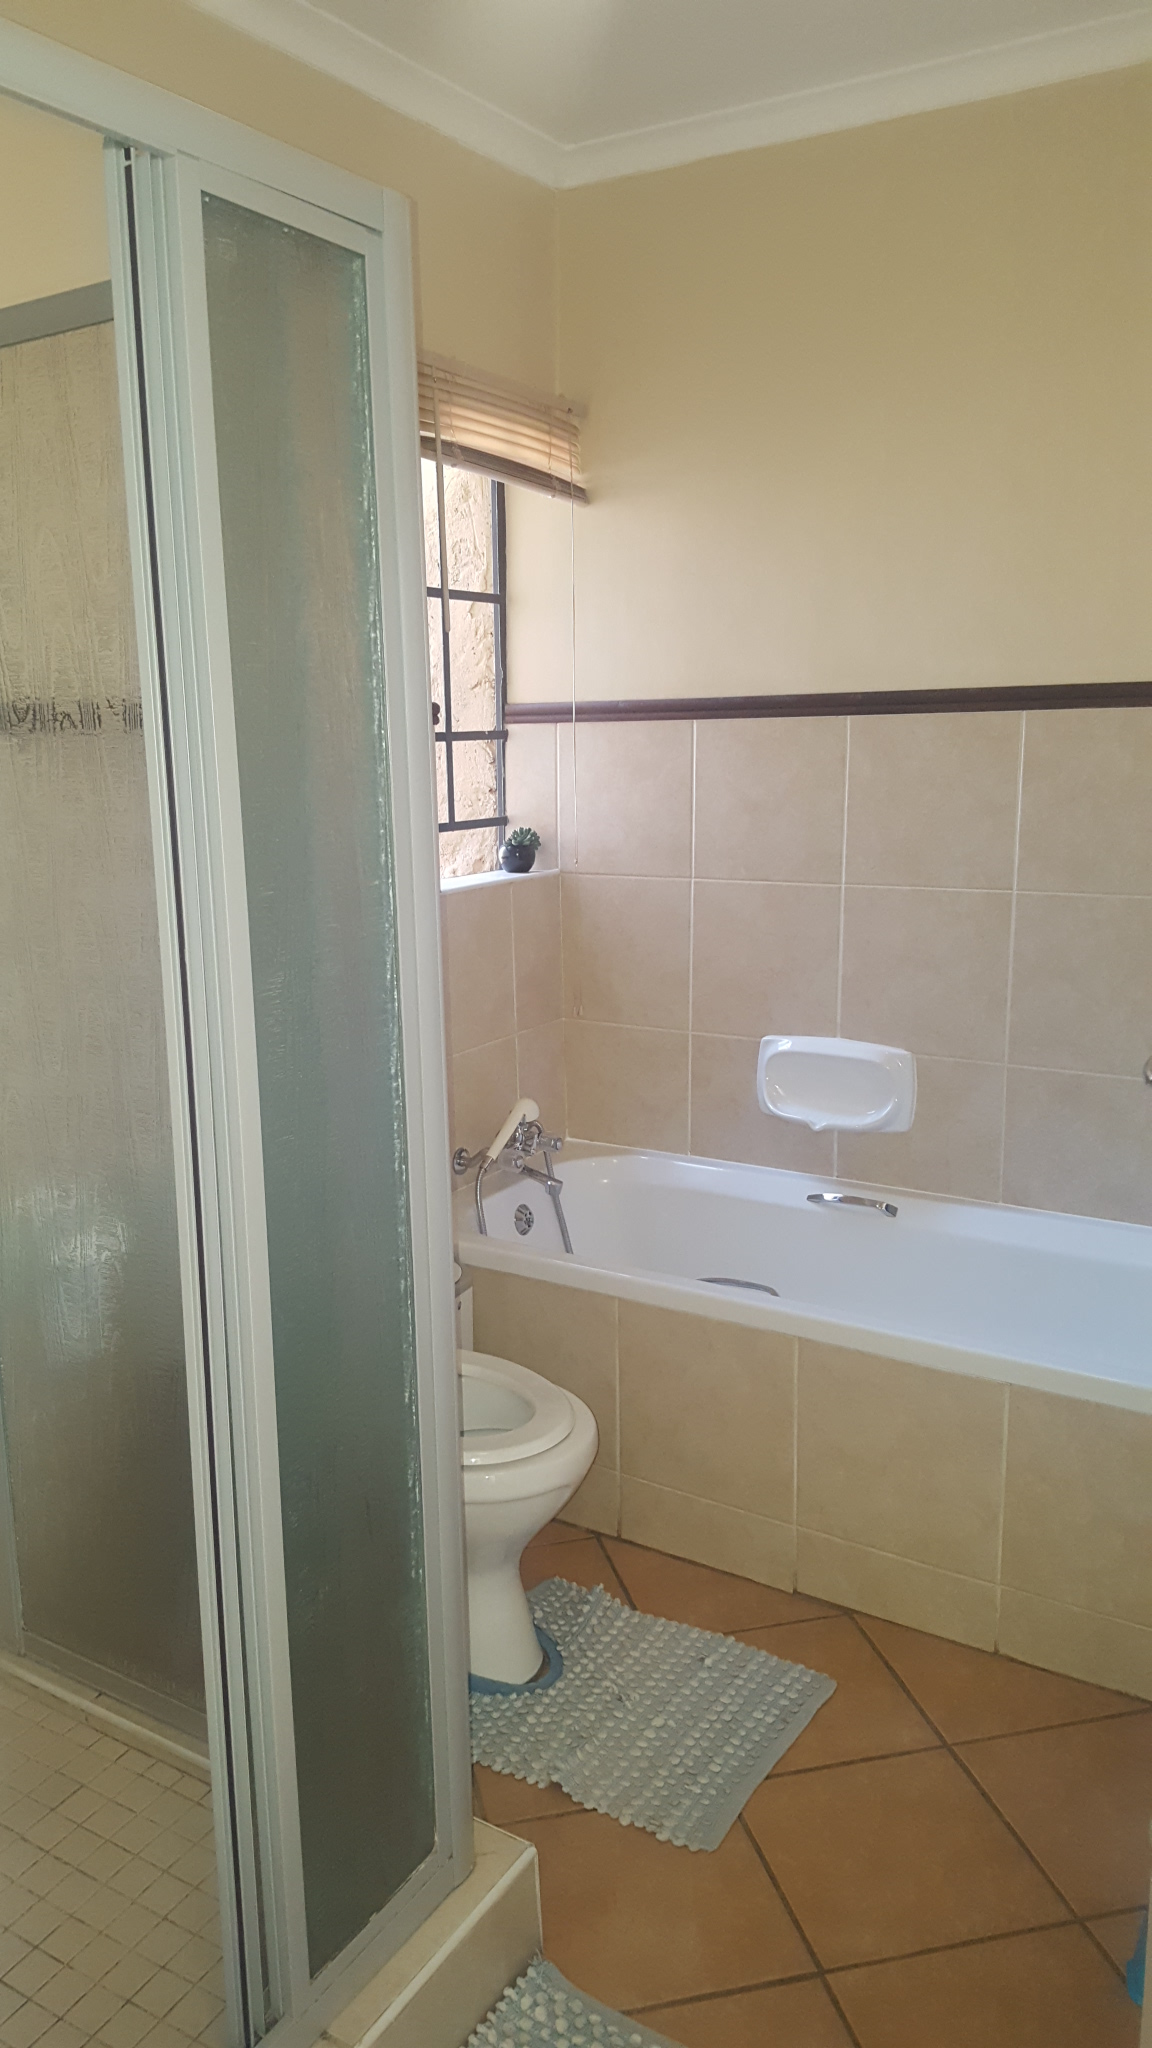 2 Bedroom Townhouse for sale in Mooikloof Ridge ENT0037652 : photo#7